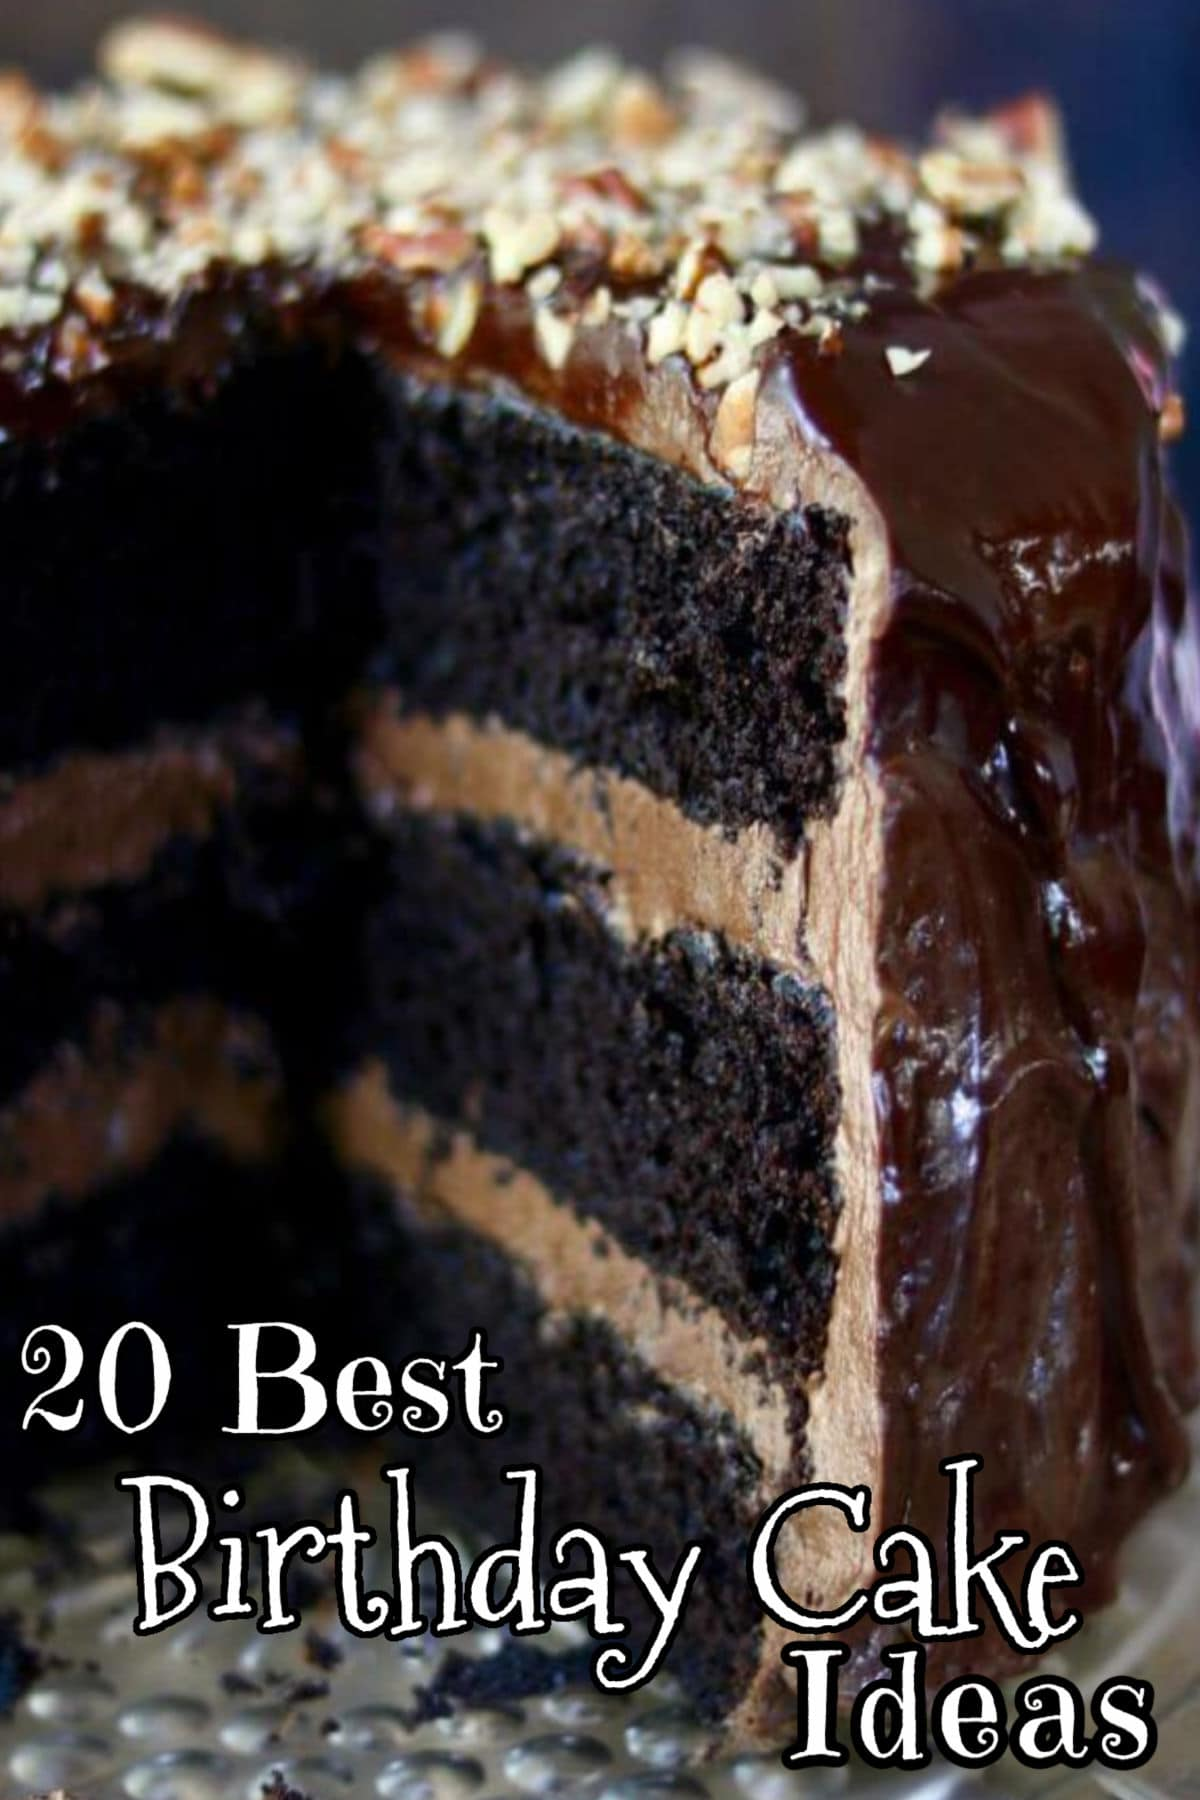 A triple chocolate layer cake with chocolate icing. Title text overlay.